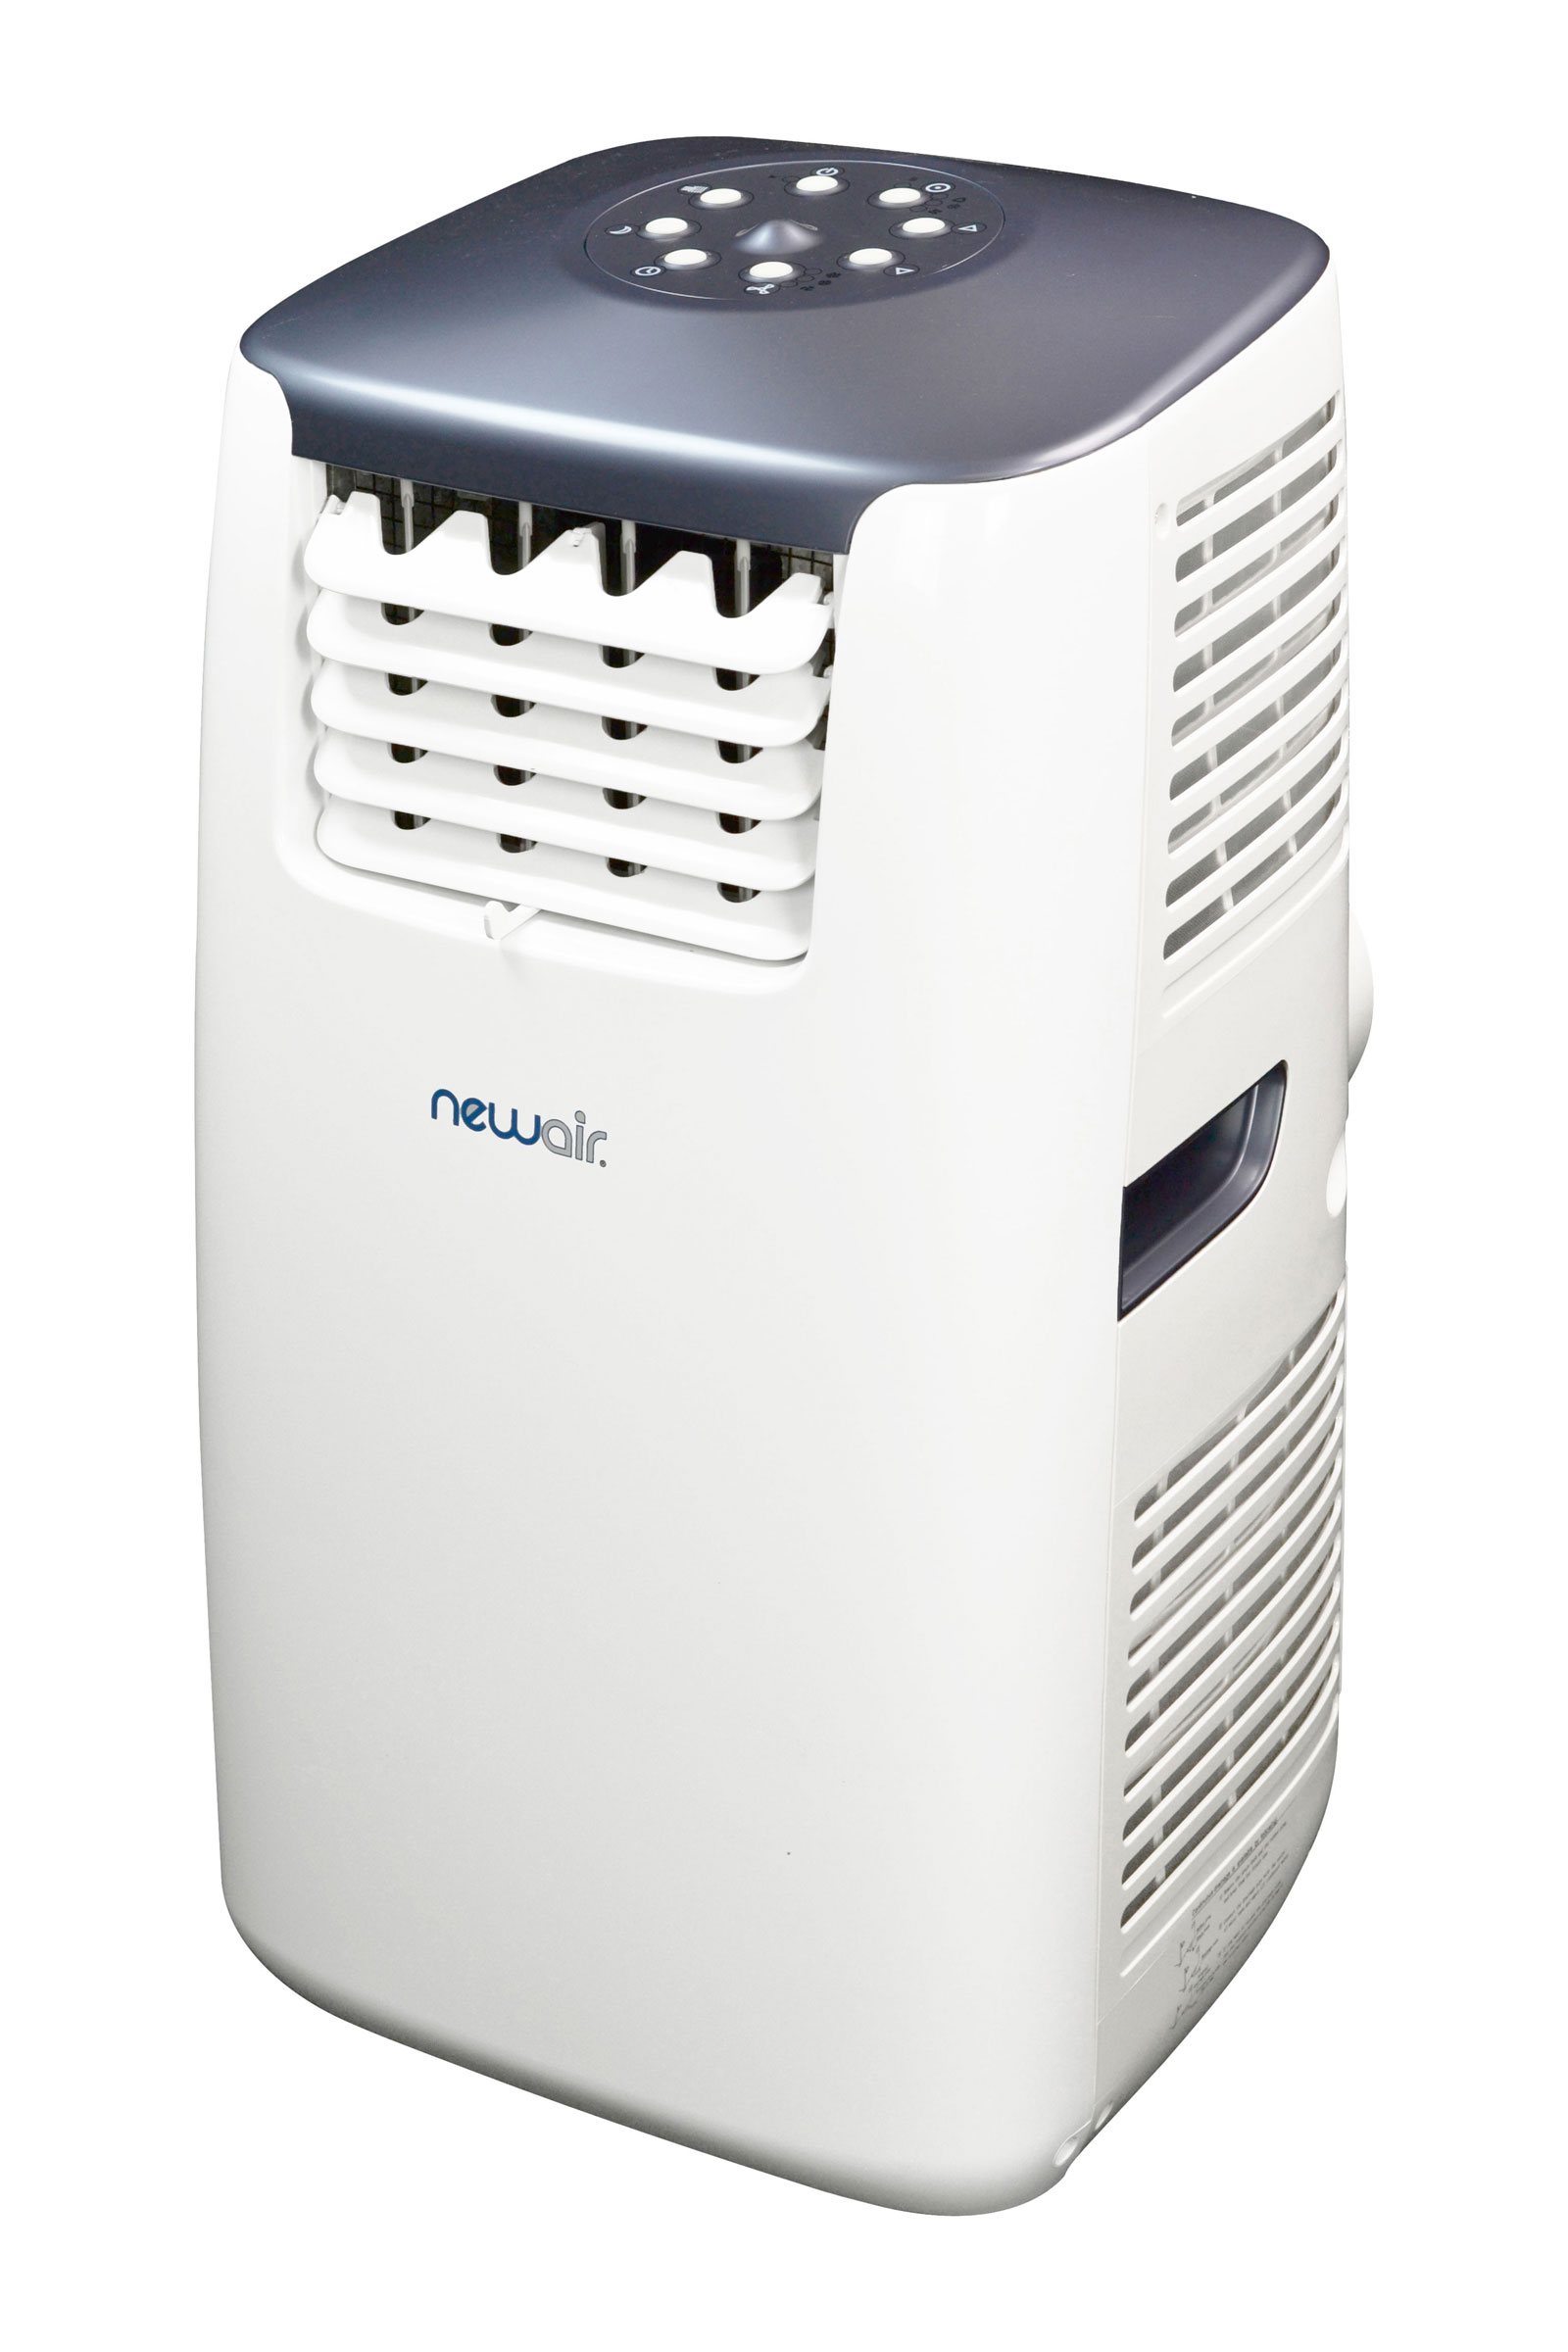 NEWAIR AC-14100E Portable Air Conditioner w/ Remote. 14,000 BTU